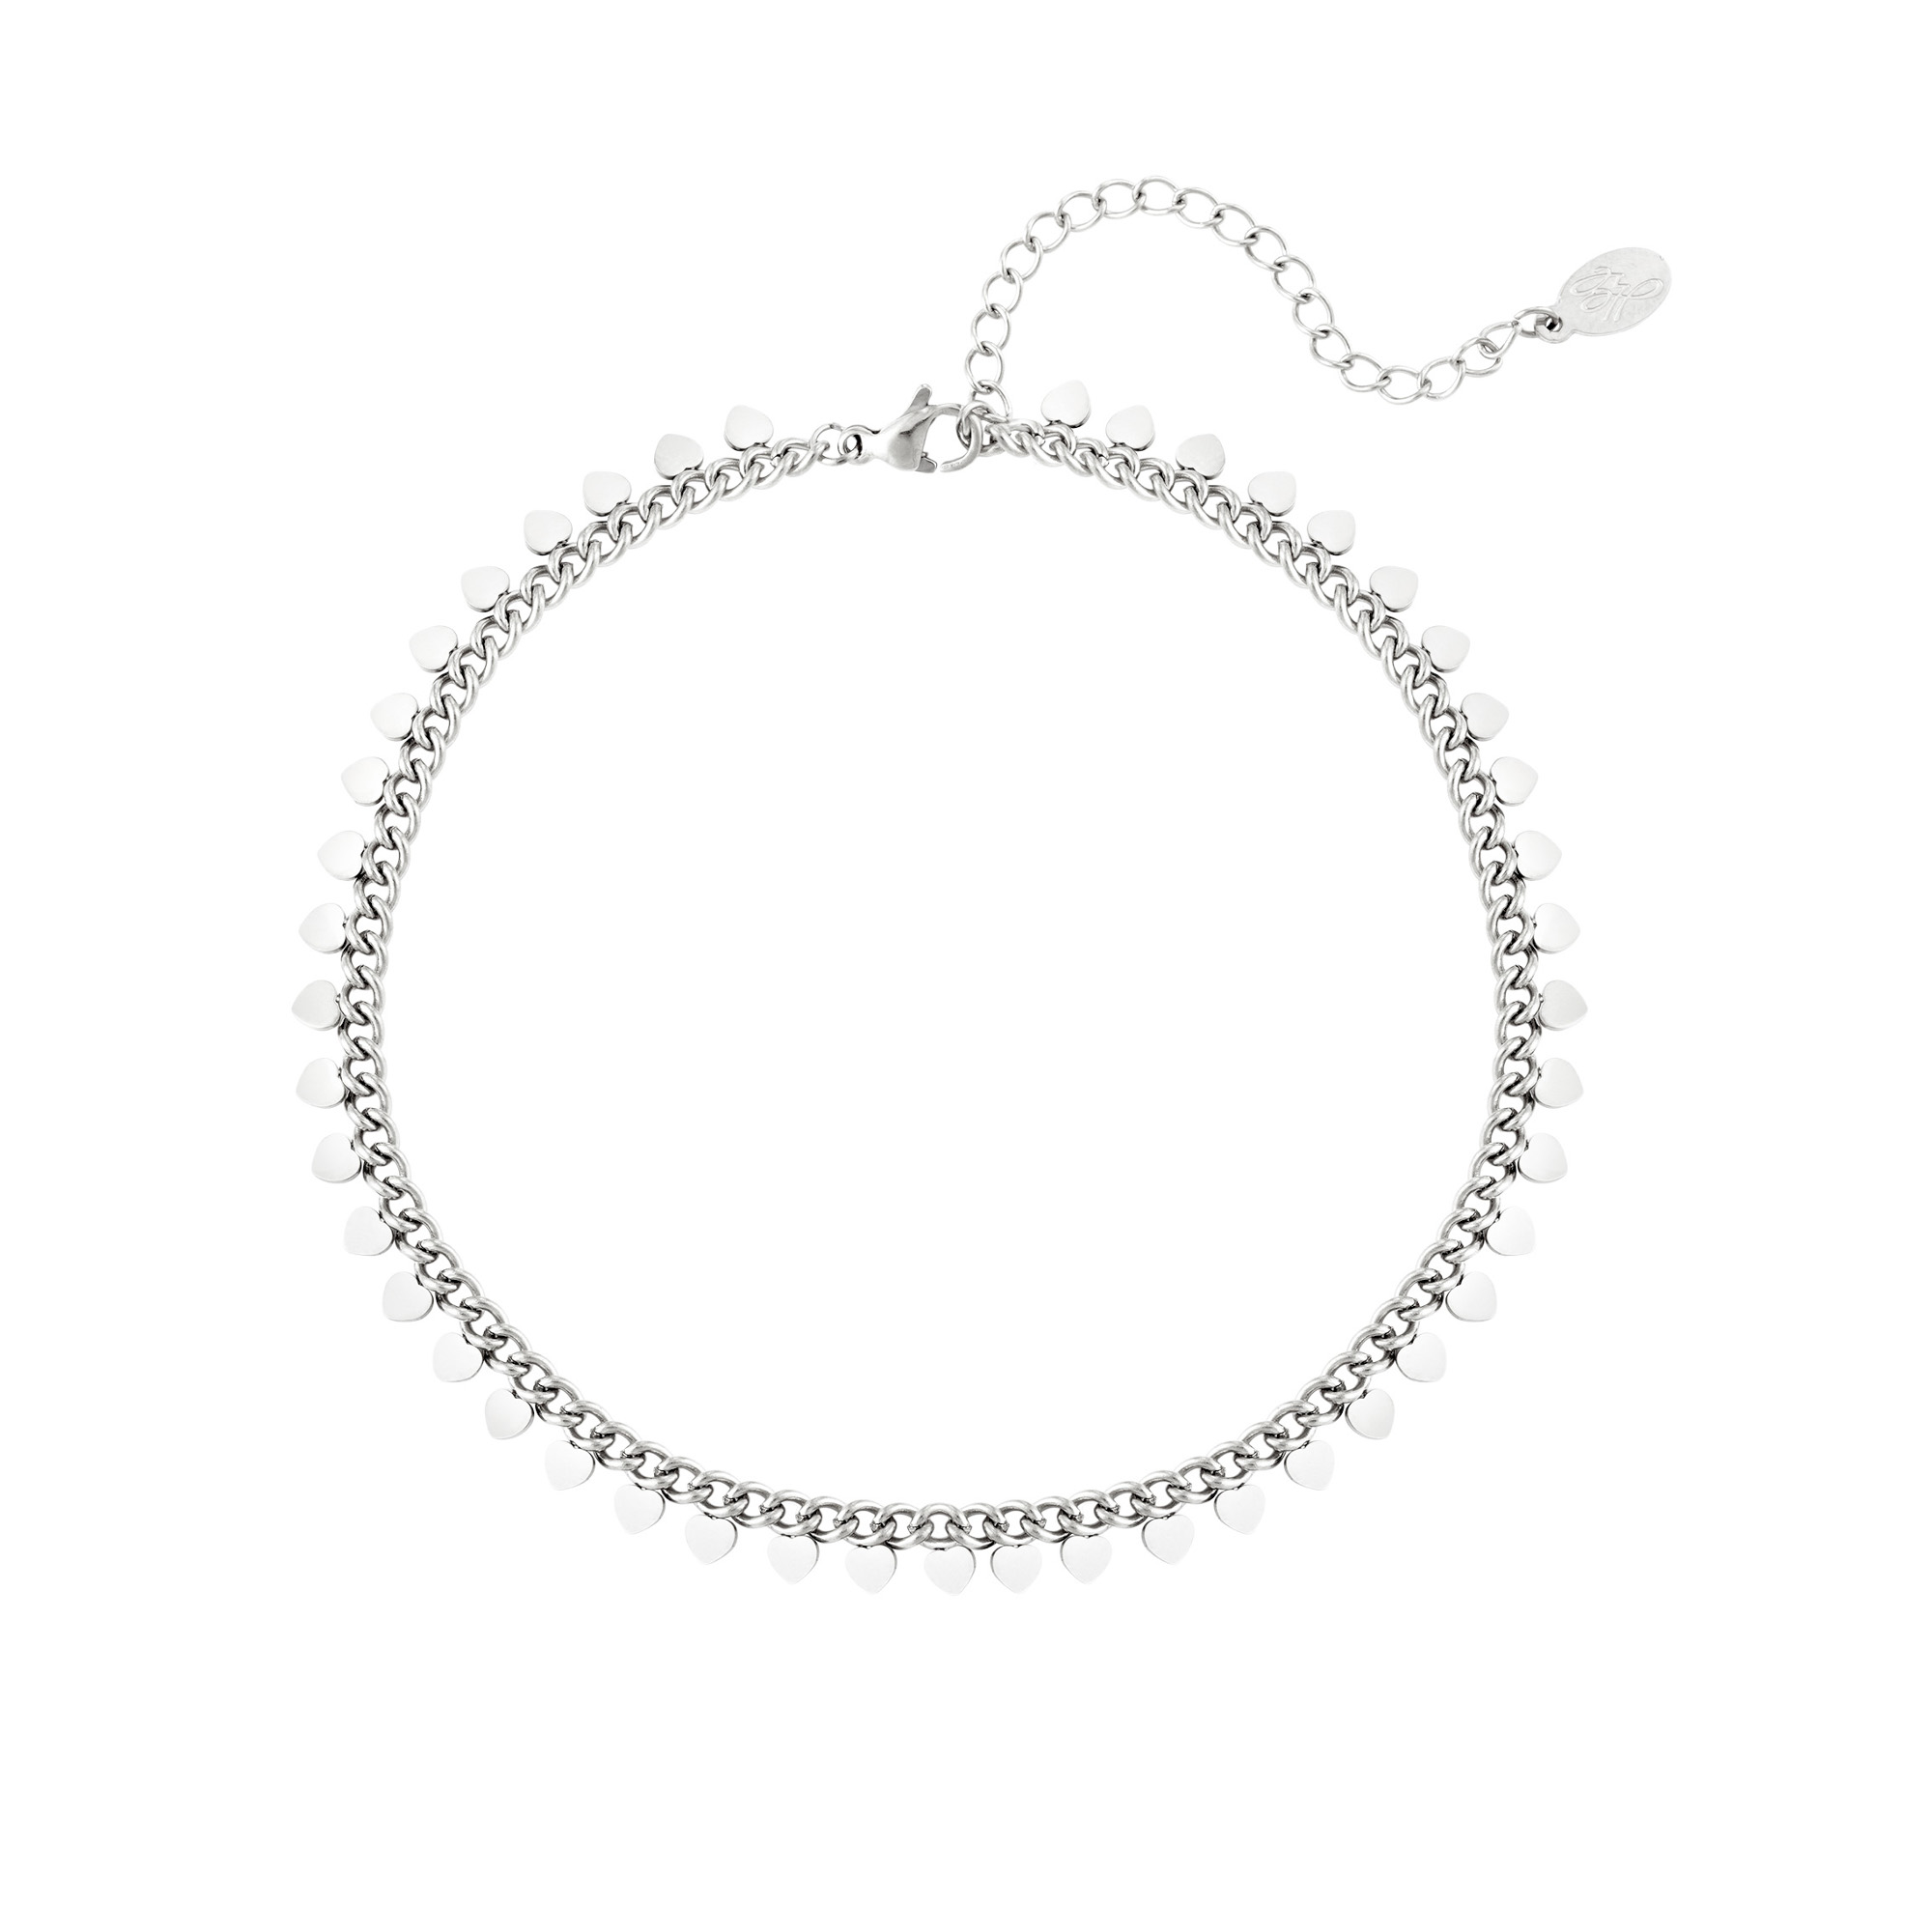 Stainless steel anklet hearts